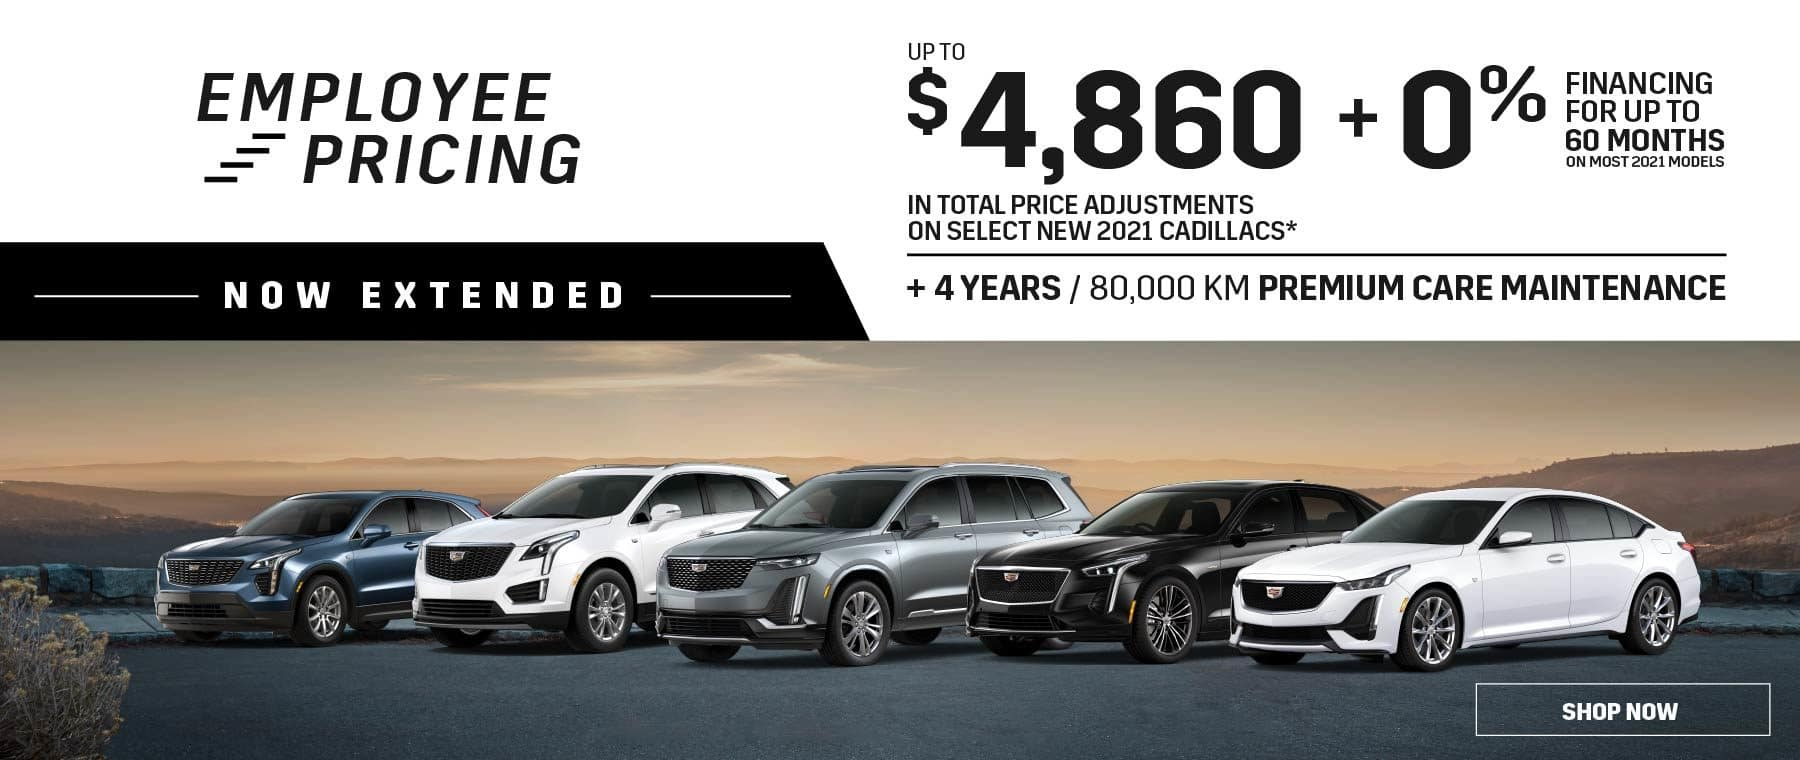 Employee Pricing Now Extended – Roy Foss Thornhill – Dealerinspire Banner 1800×760 – Cadillac – Revised